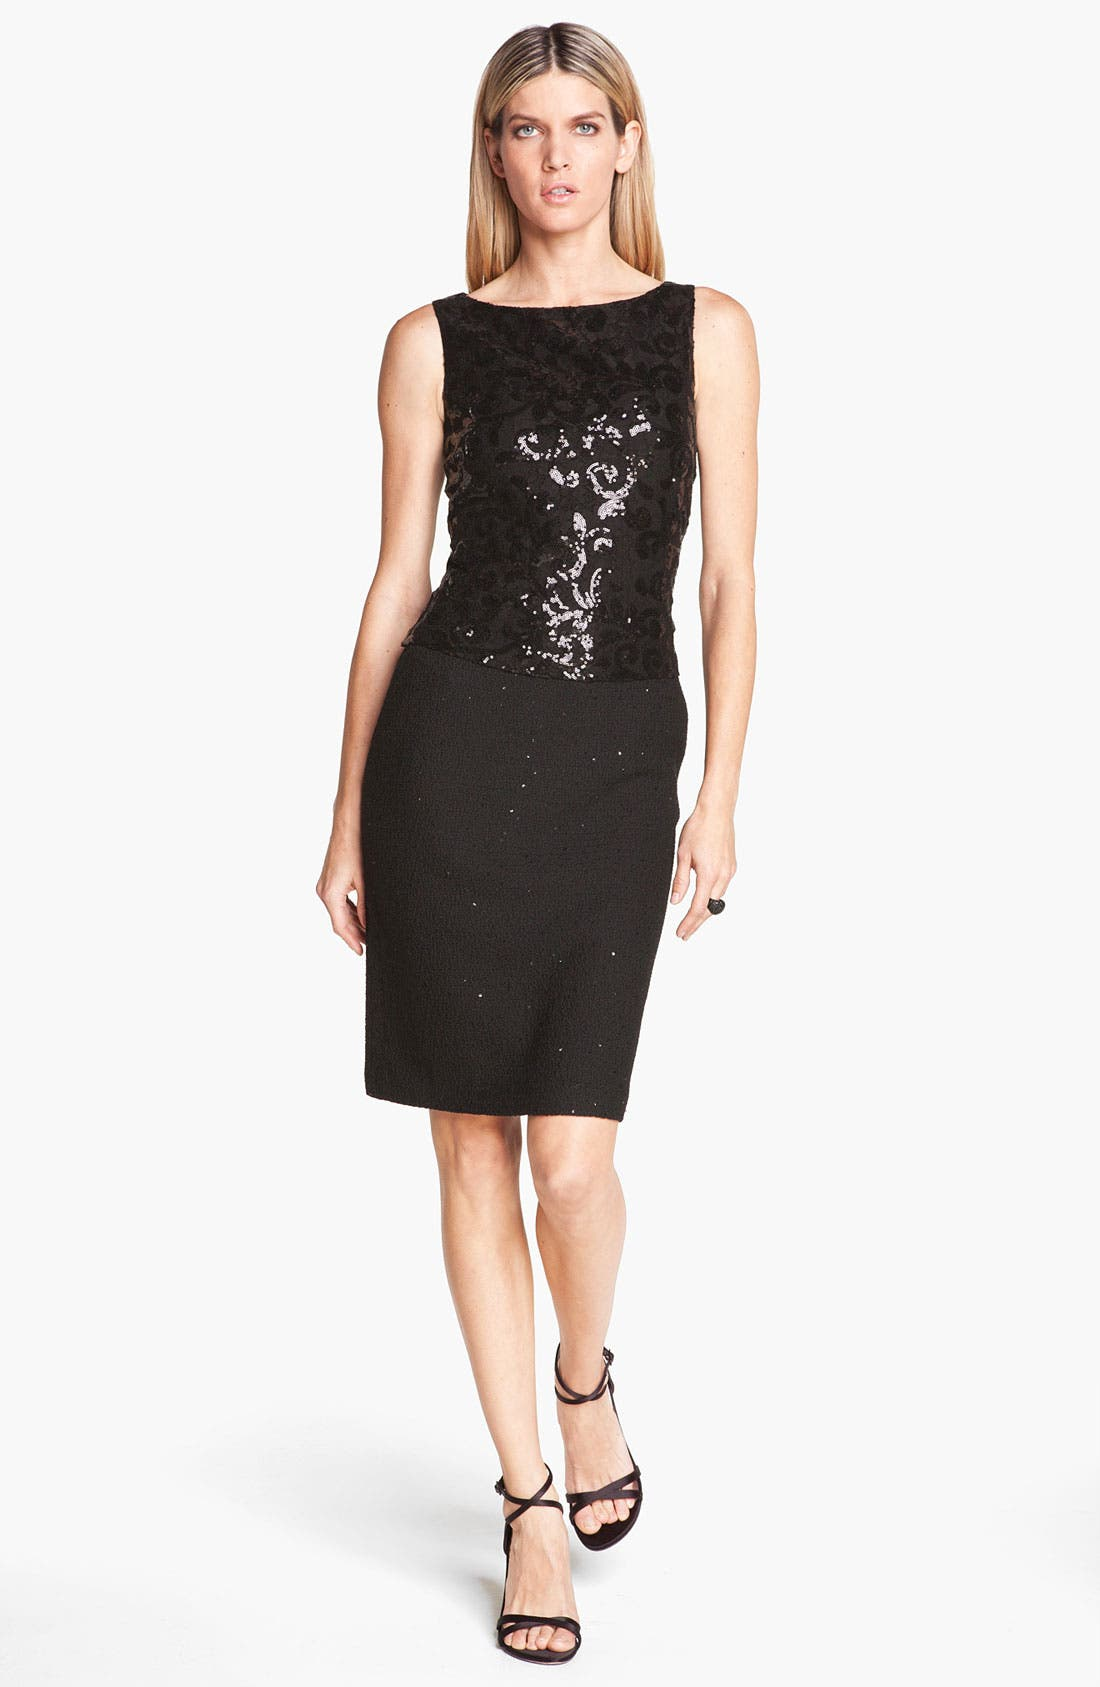 Main Image - St. John Collection Sequin Lace & Shimmer Knit Dress